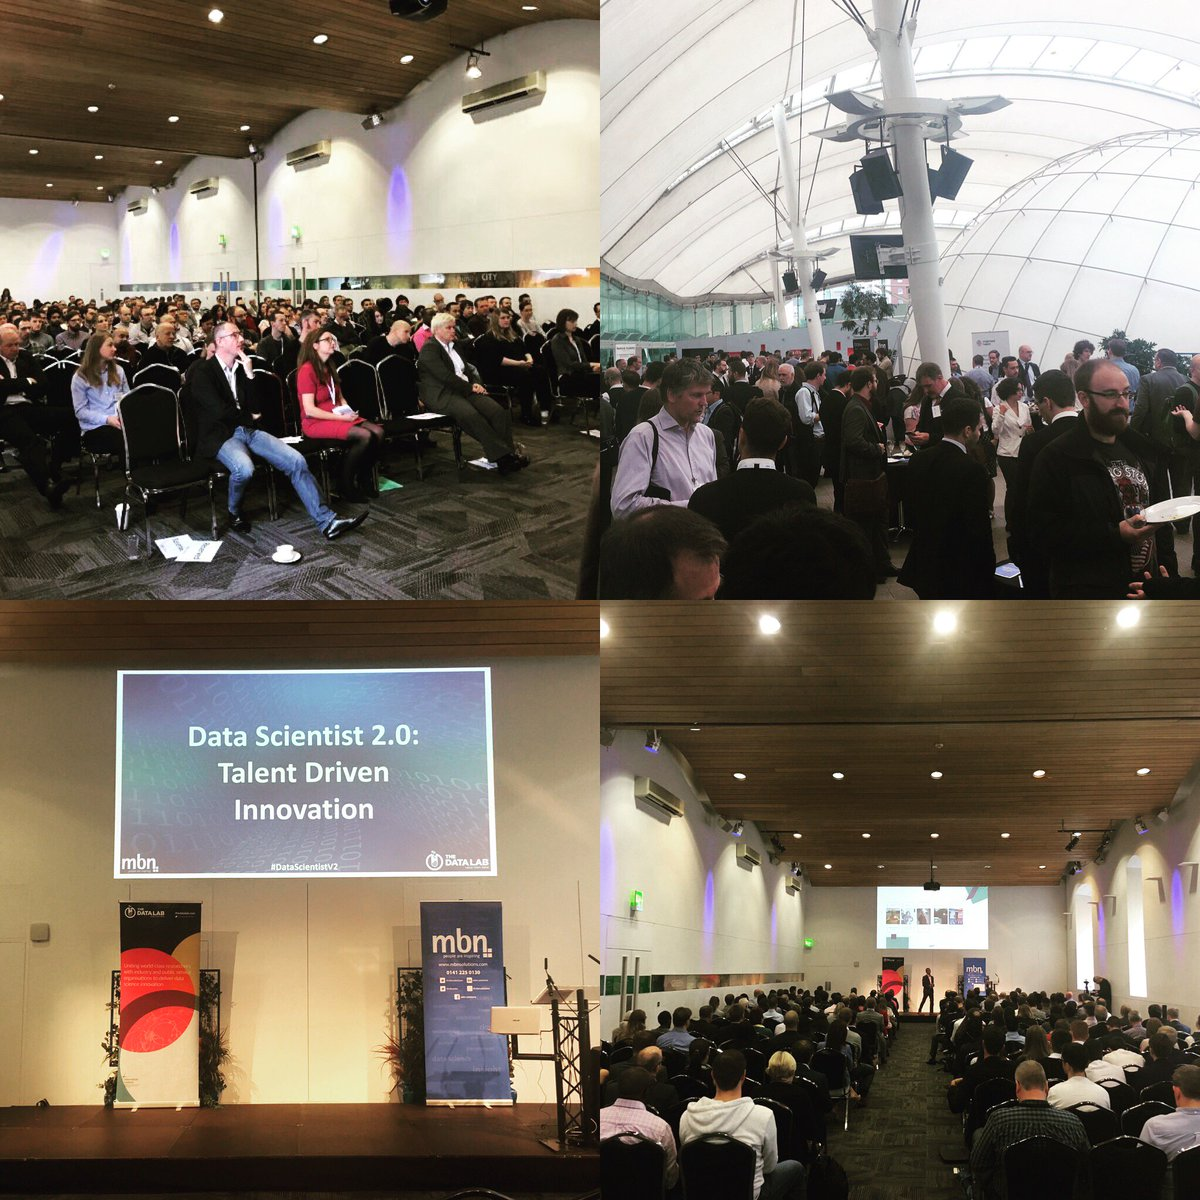 Brilliant day last Wednesday at #DataScientistV2. Did you miss it? Read &amp; watch our highlights of the day.  http://www. mbnsolutions.com/news/data-scie ntist-2-0-talent-driven-innovation/ &nbsp; …  #Data<br>http://pic.twitter.com/AMDtoSDZDk